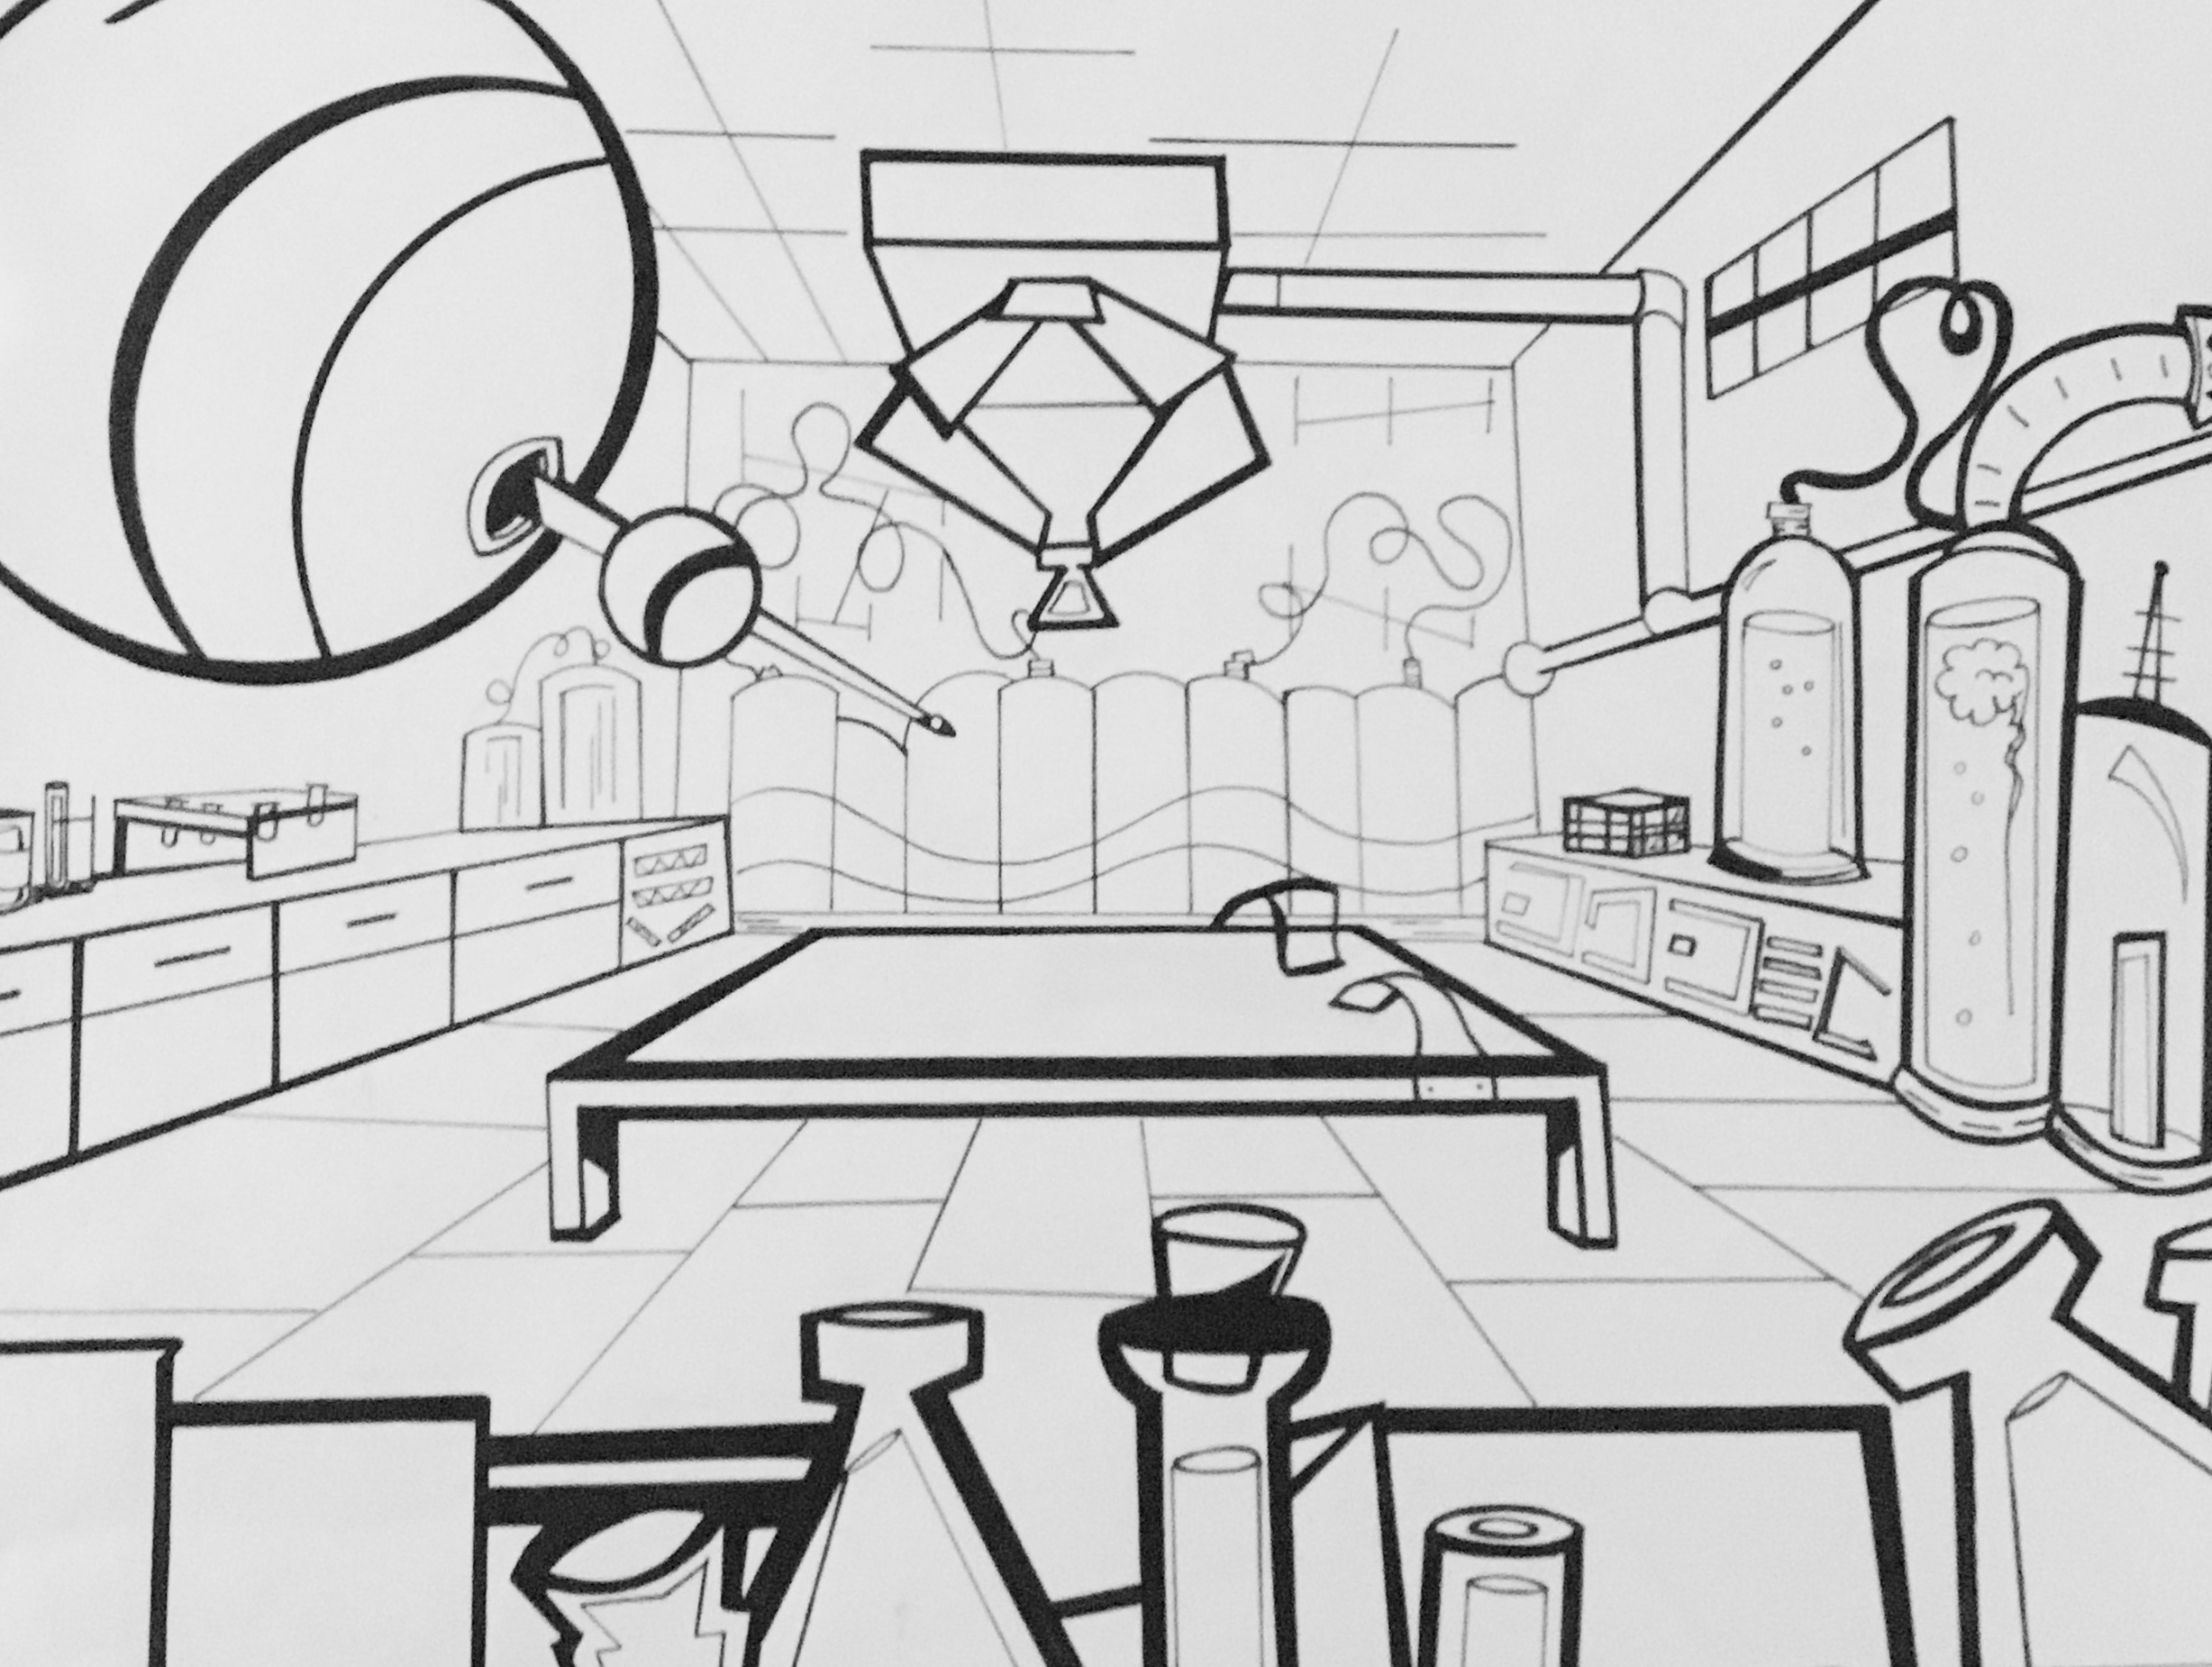 Laboratory - Ink and paper - Classical Animation 2012